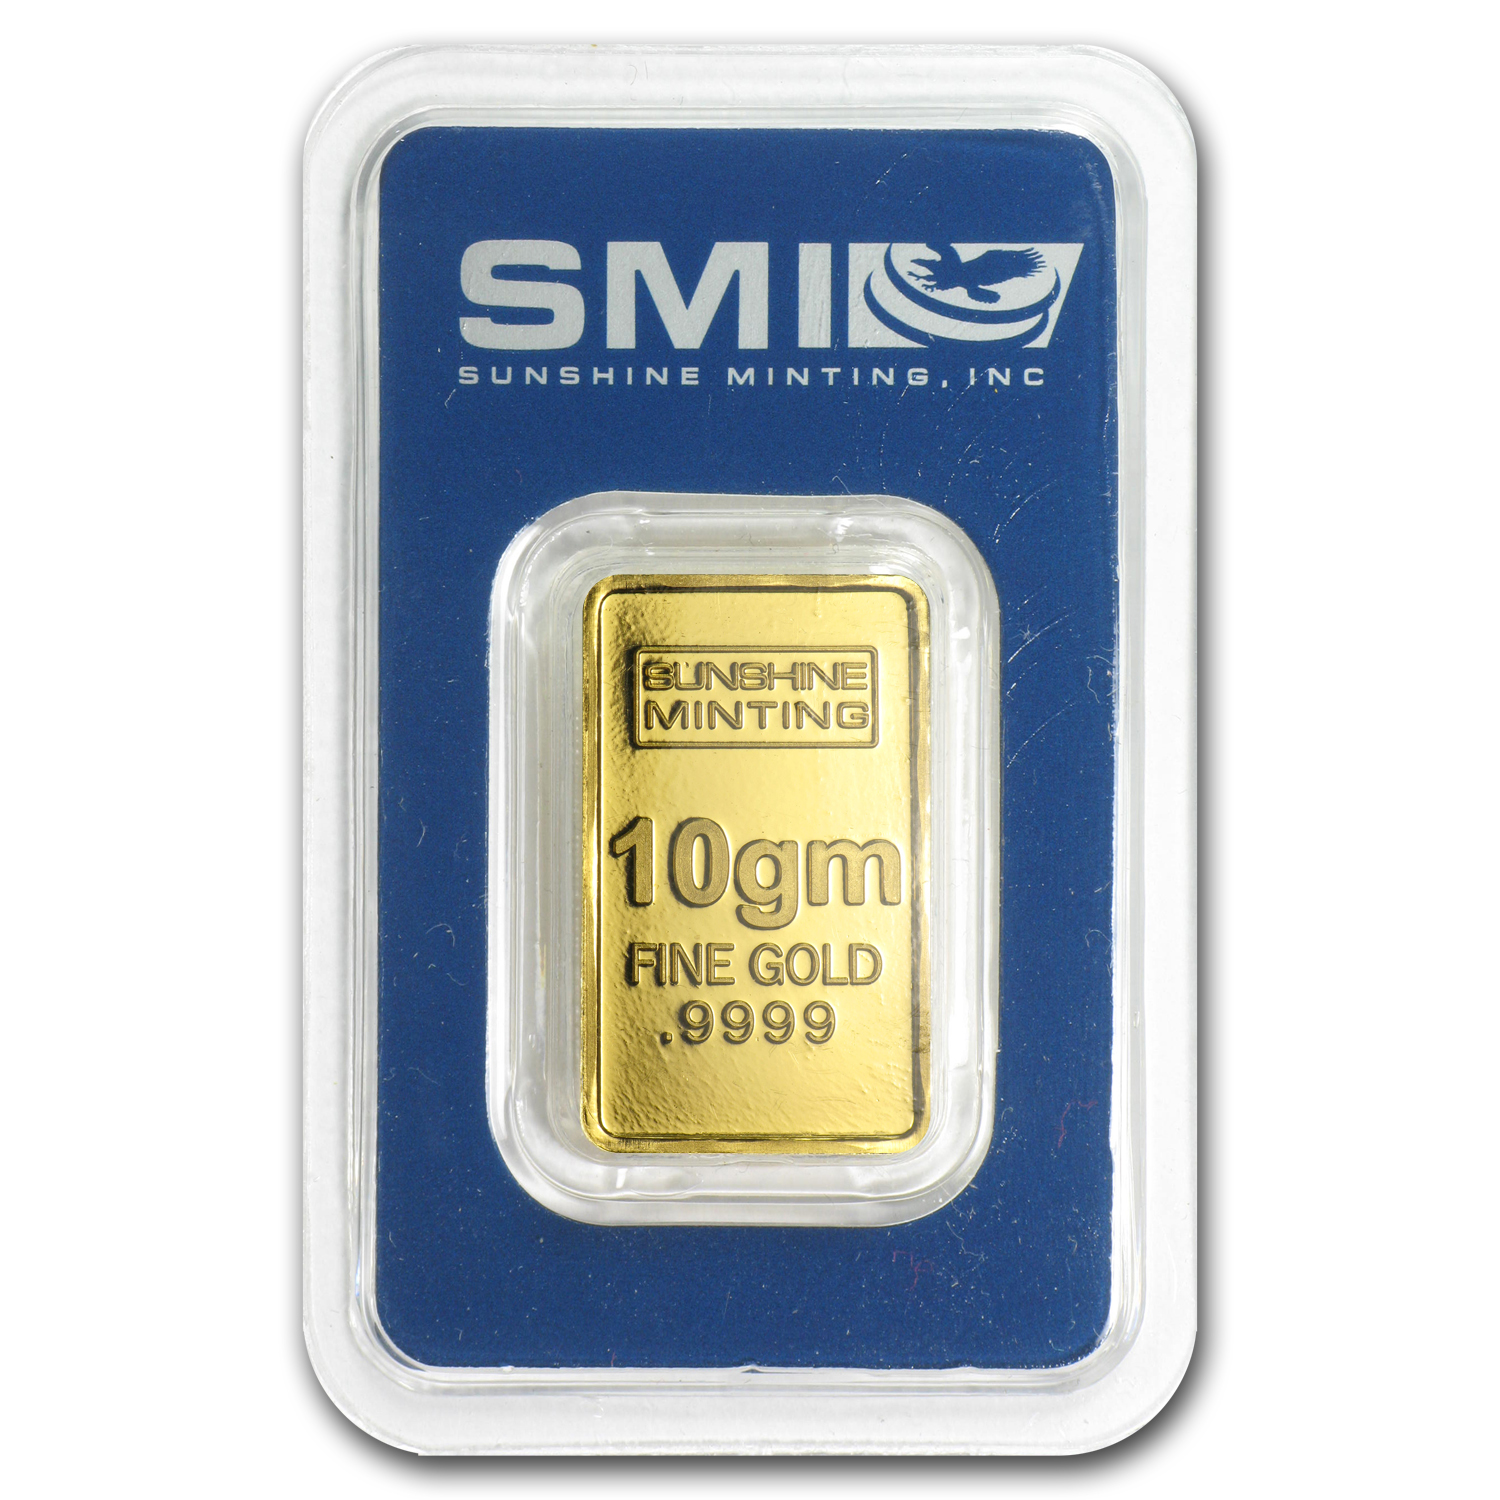 10 gram Gold Bar - Sunshine Minting Old Design (In TEP Packaging)